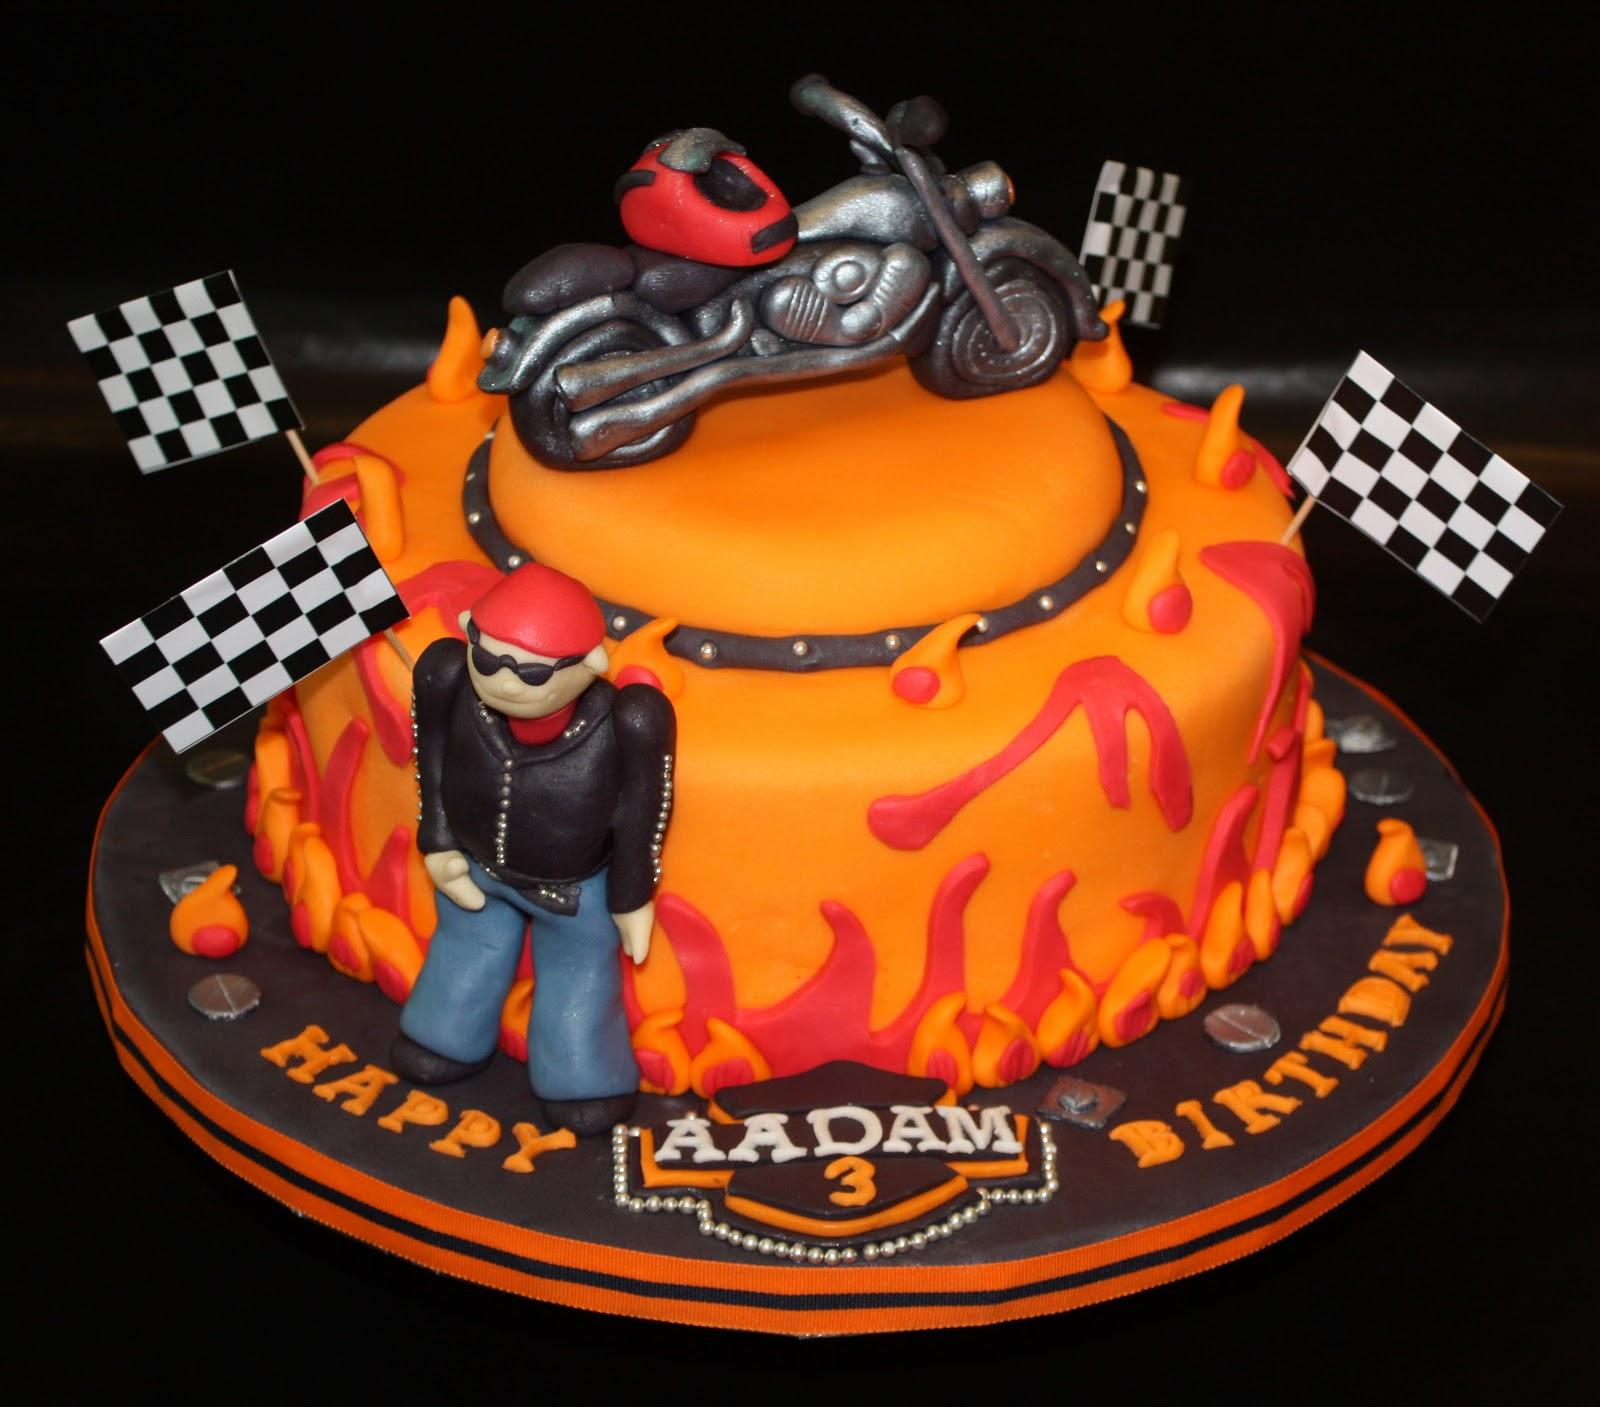 11 Bikers Themed Cakes Photo HarleyDavidson Birthday Cake Biker